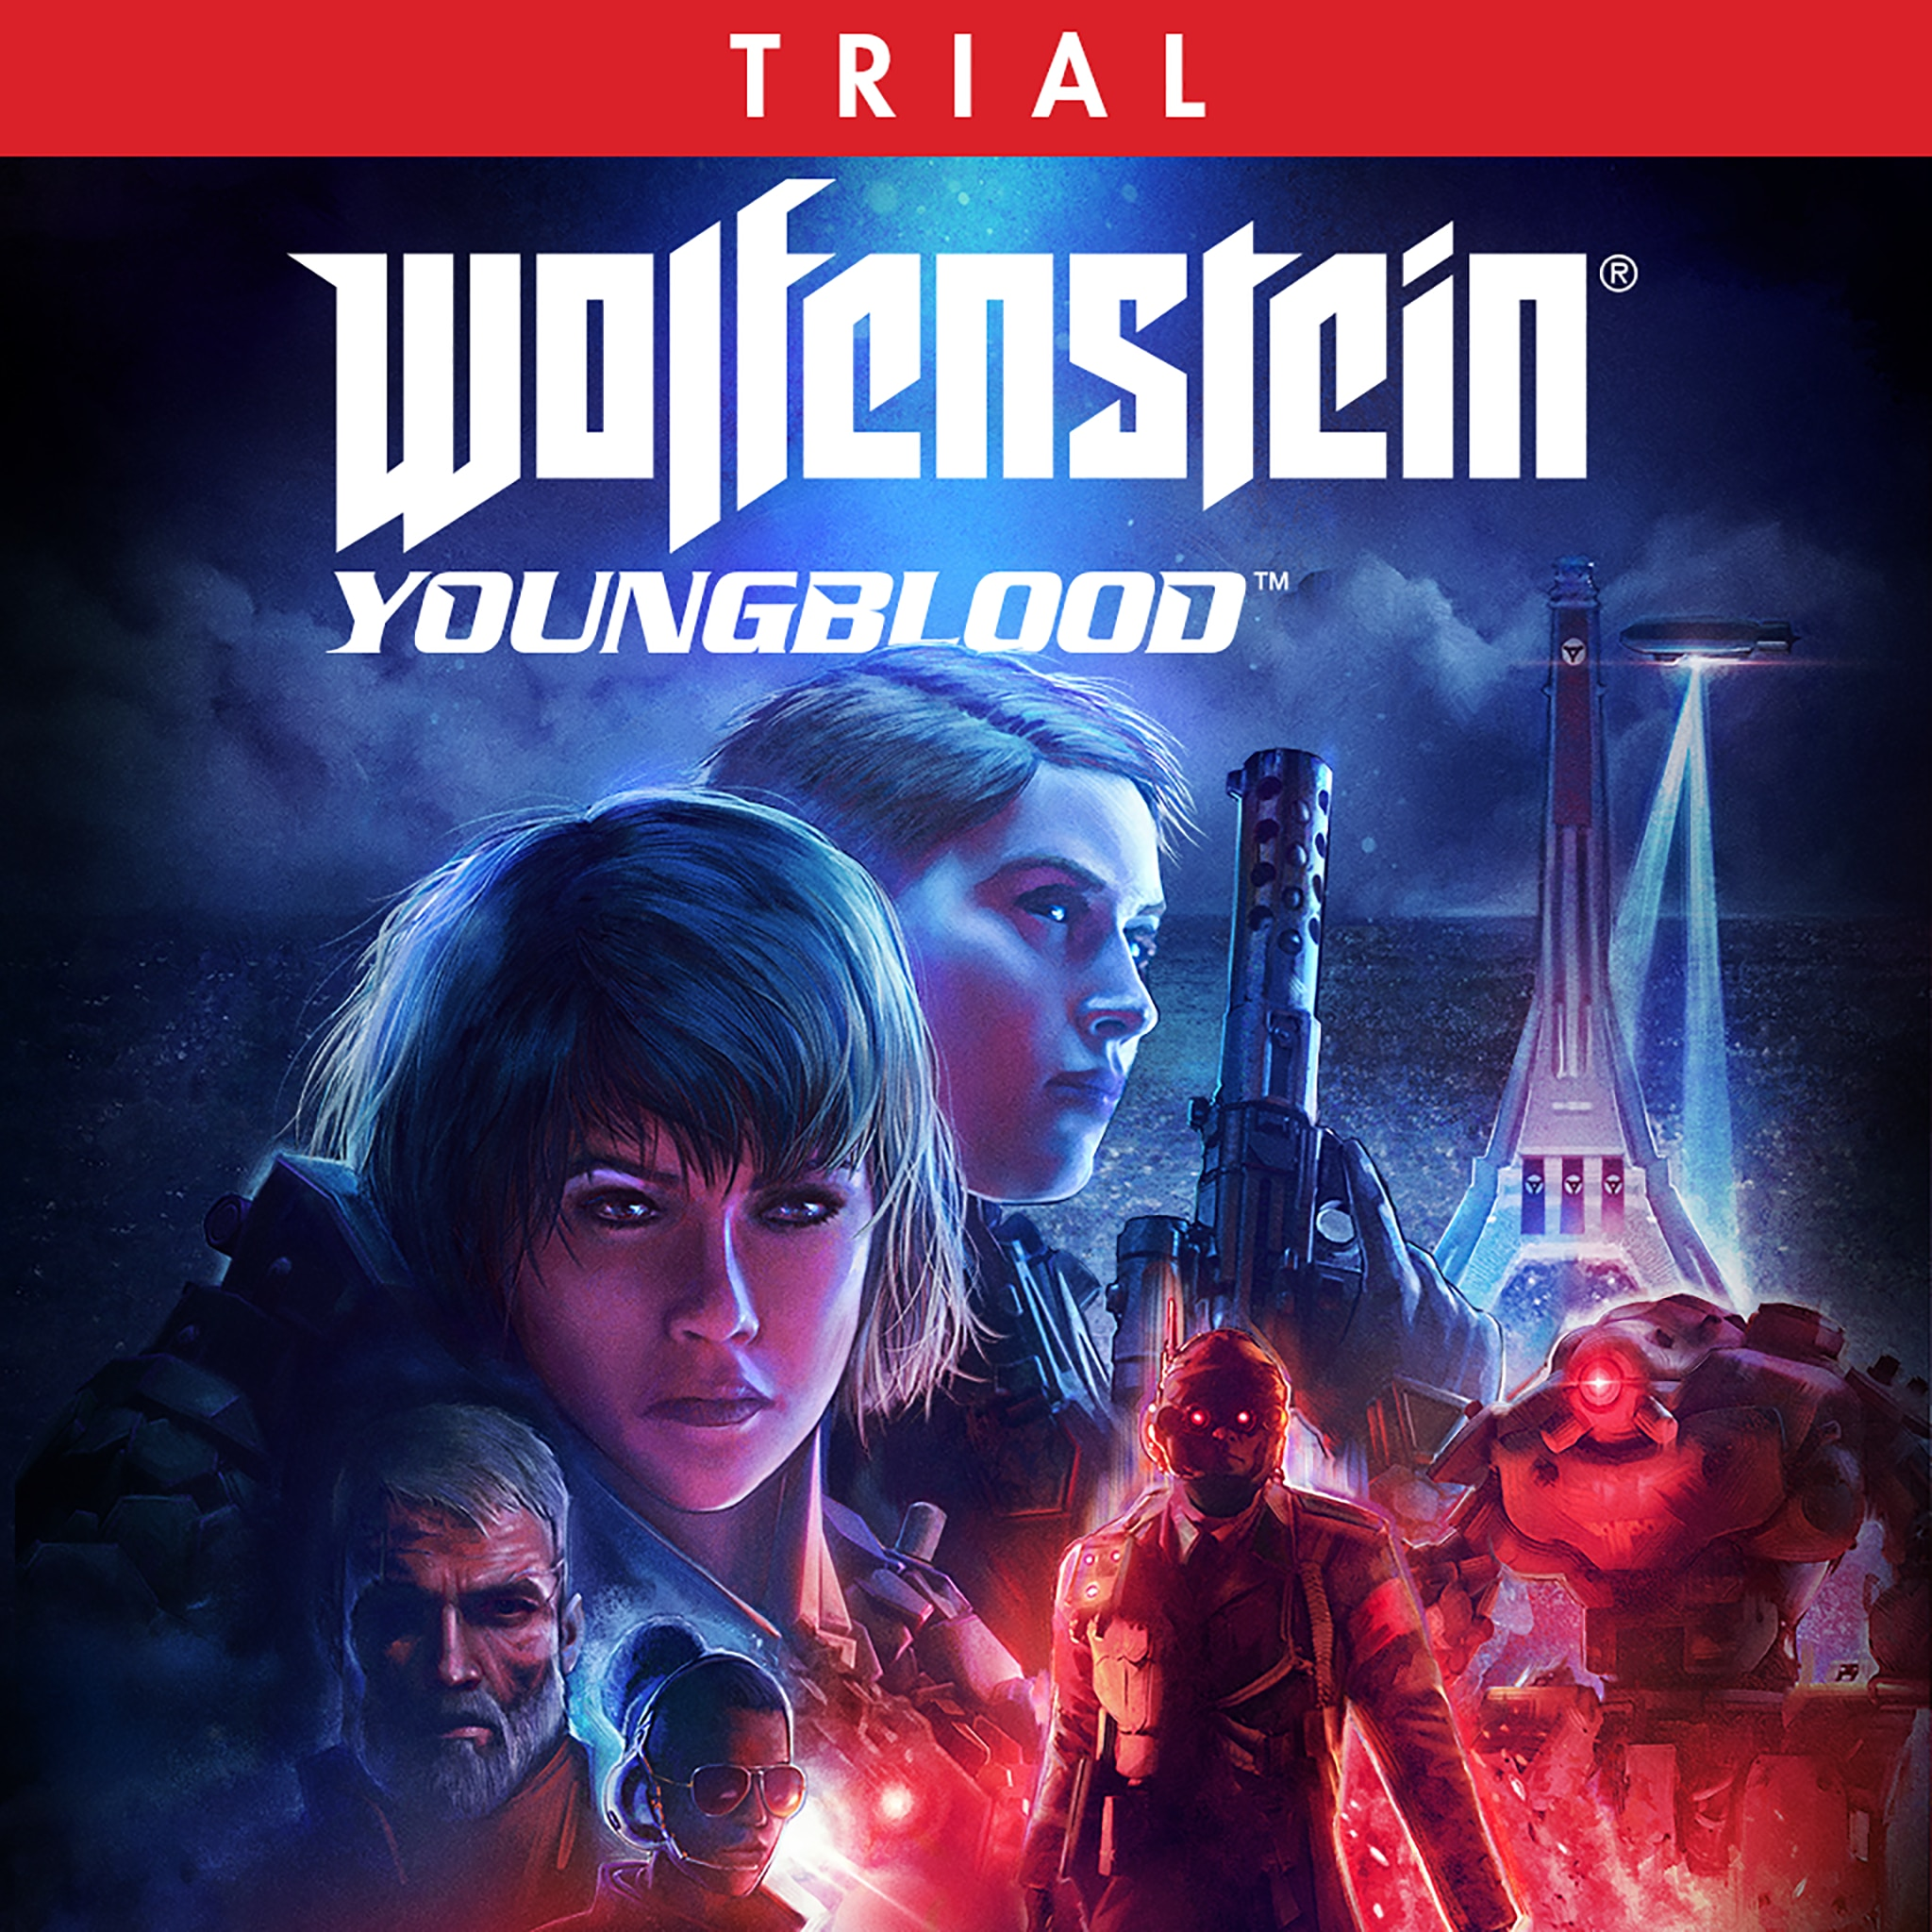 Wolfenstein: Youngblood - Trial (International Version)